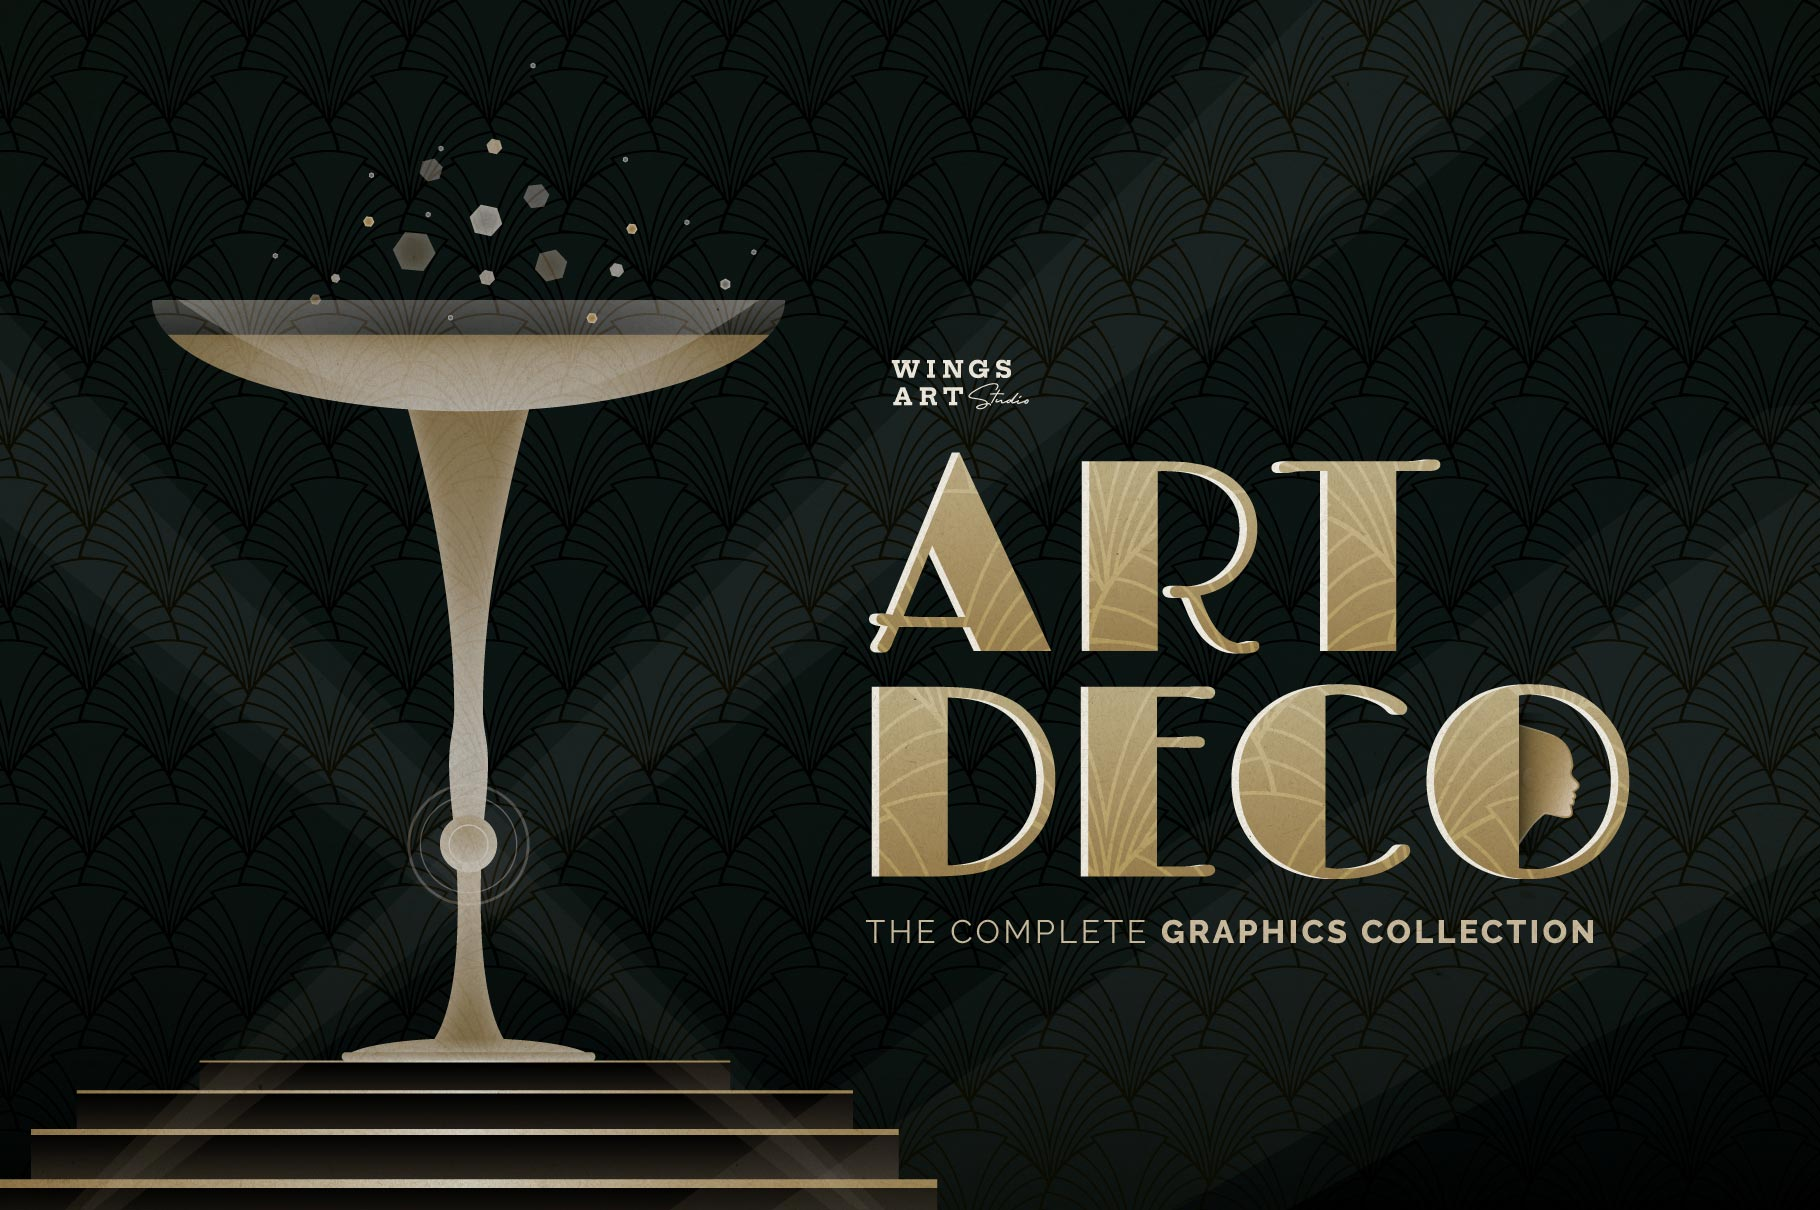 Vintage Art Deco Graphics Collection by Wing's Art Studio